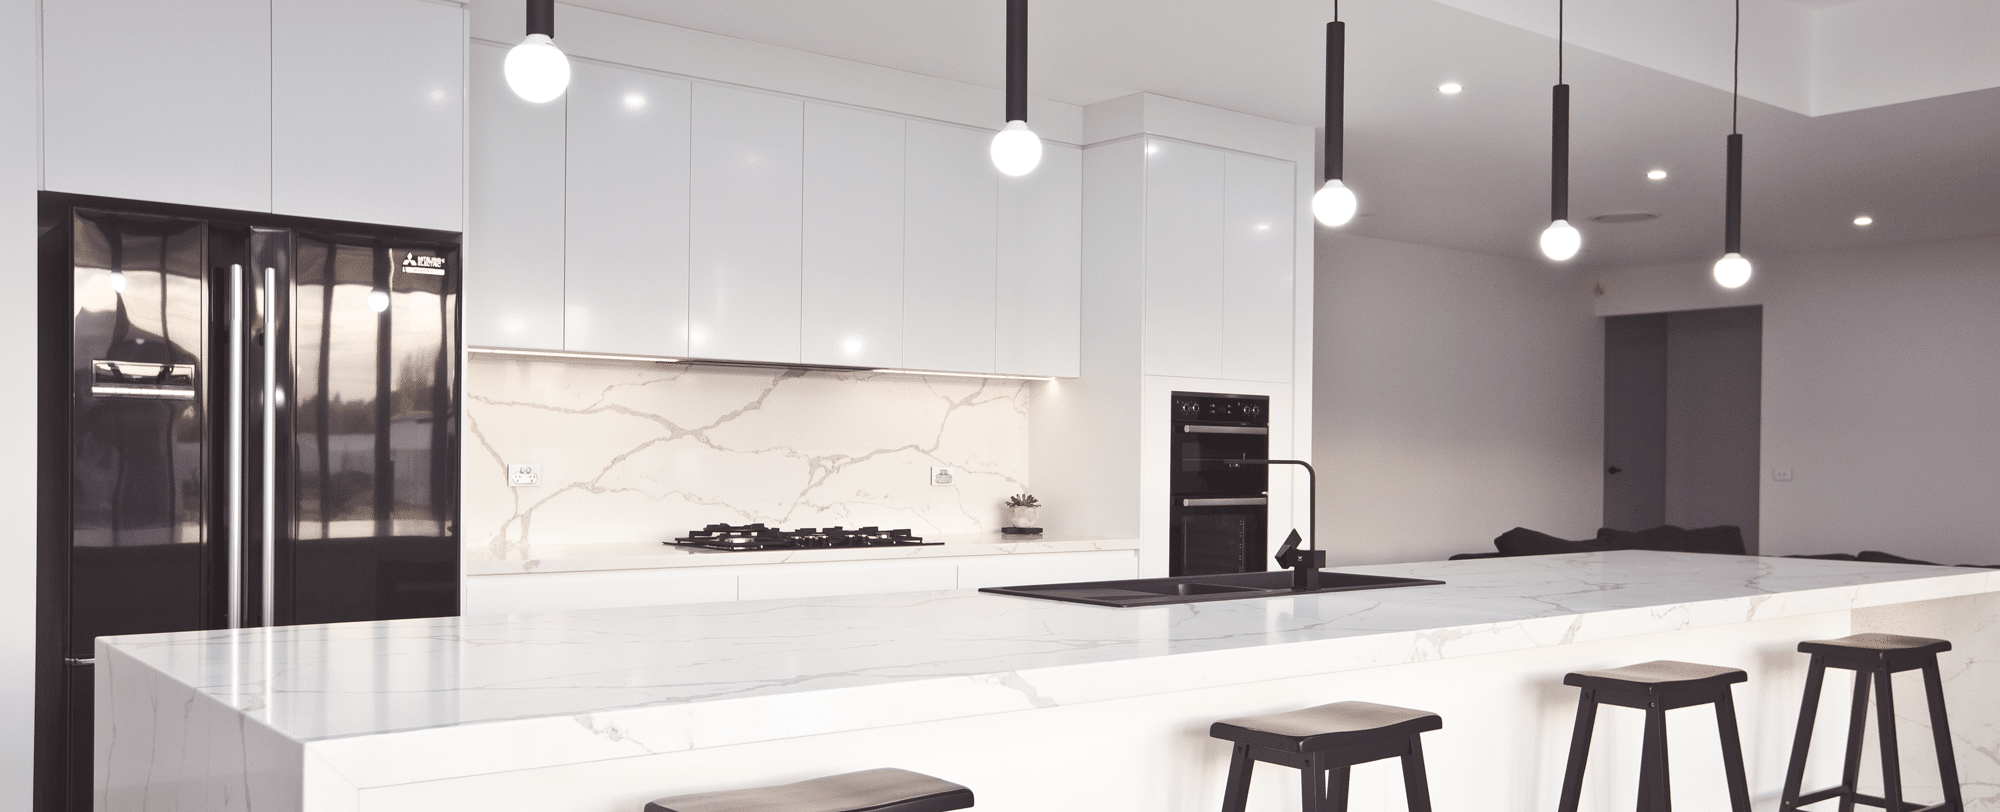 French Provincial Lighting Australia Kitchens Joinery Co Australia